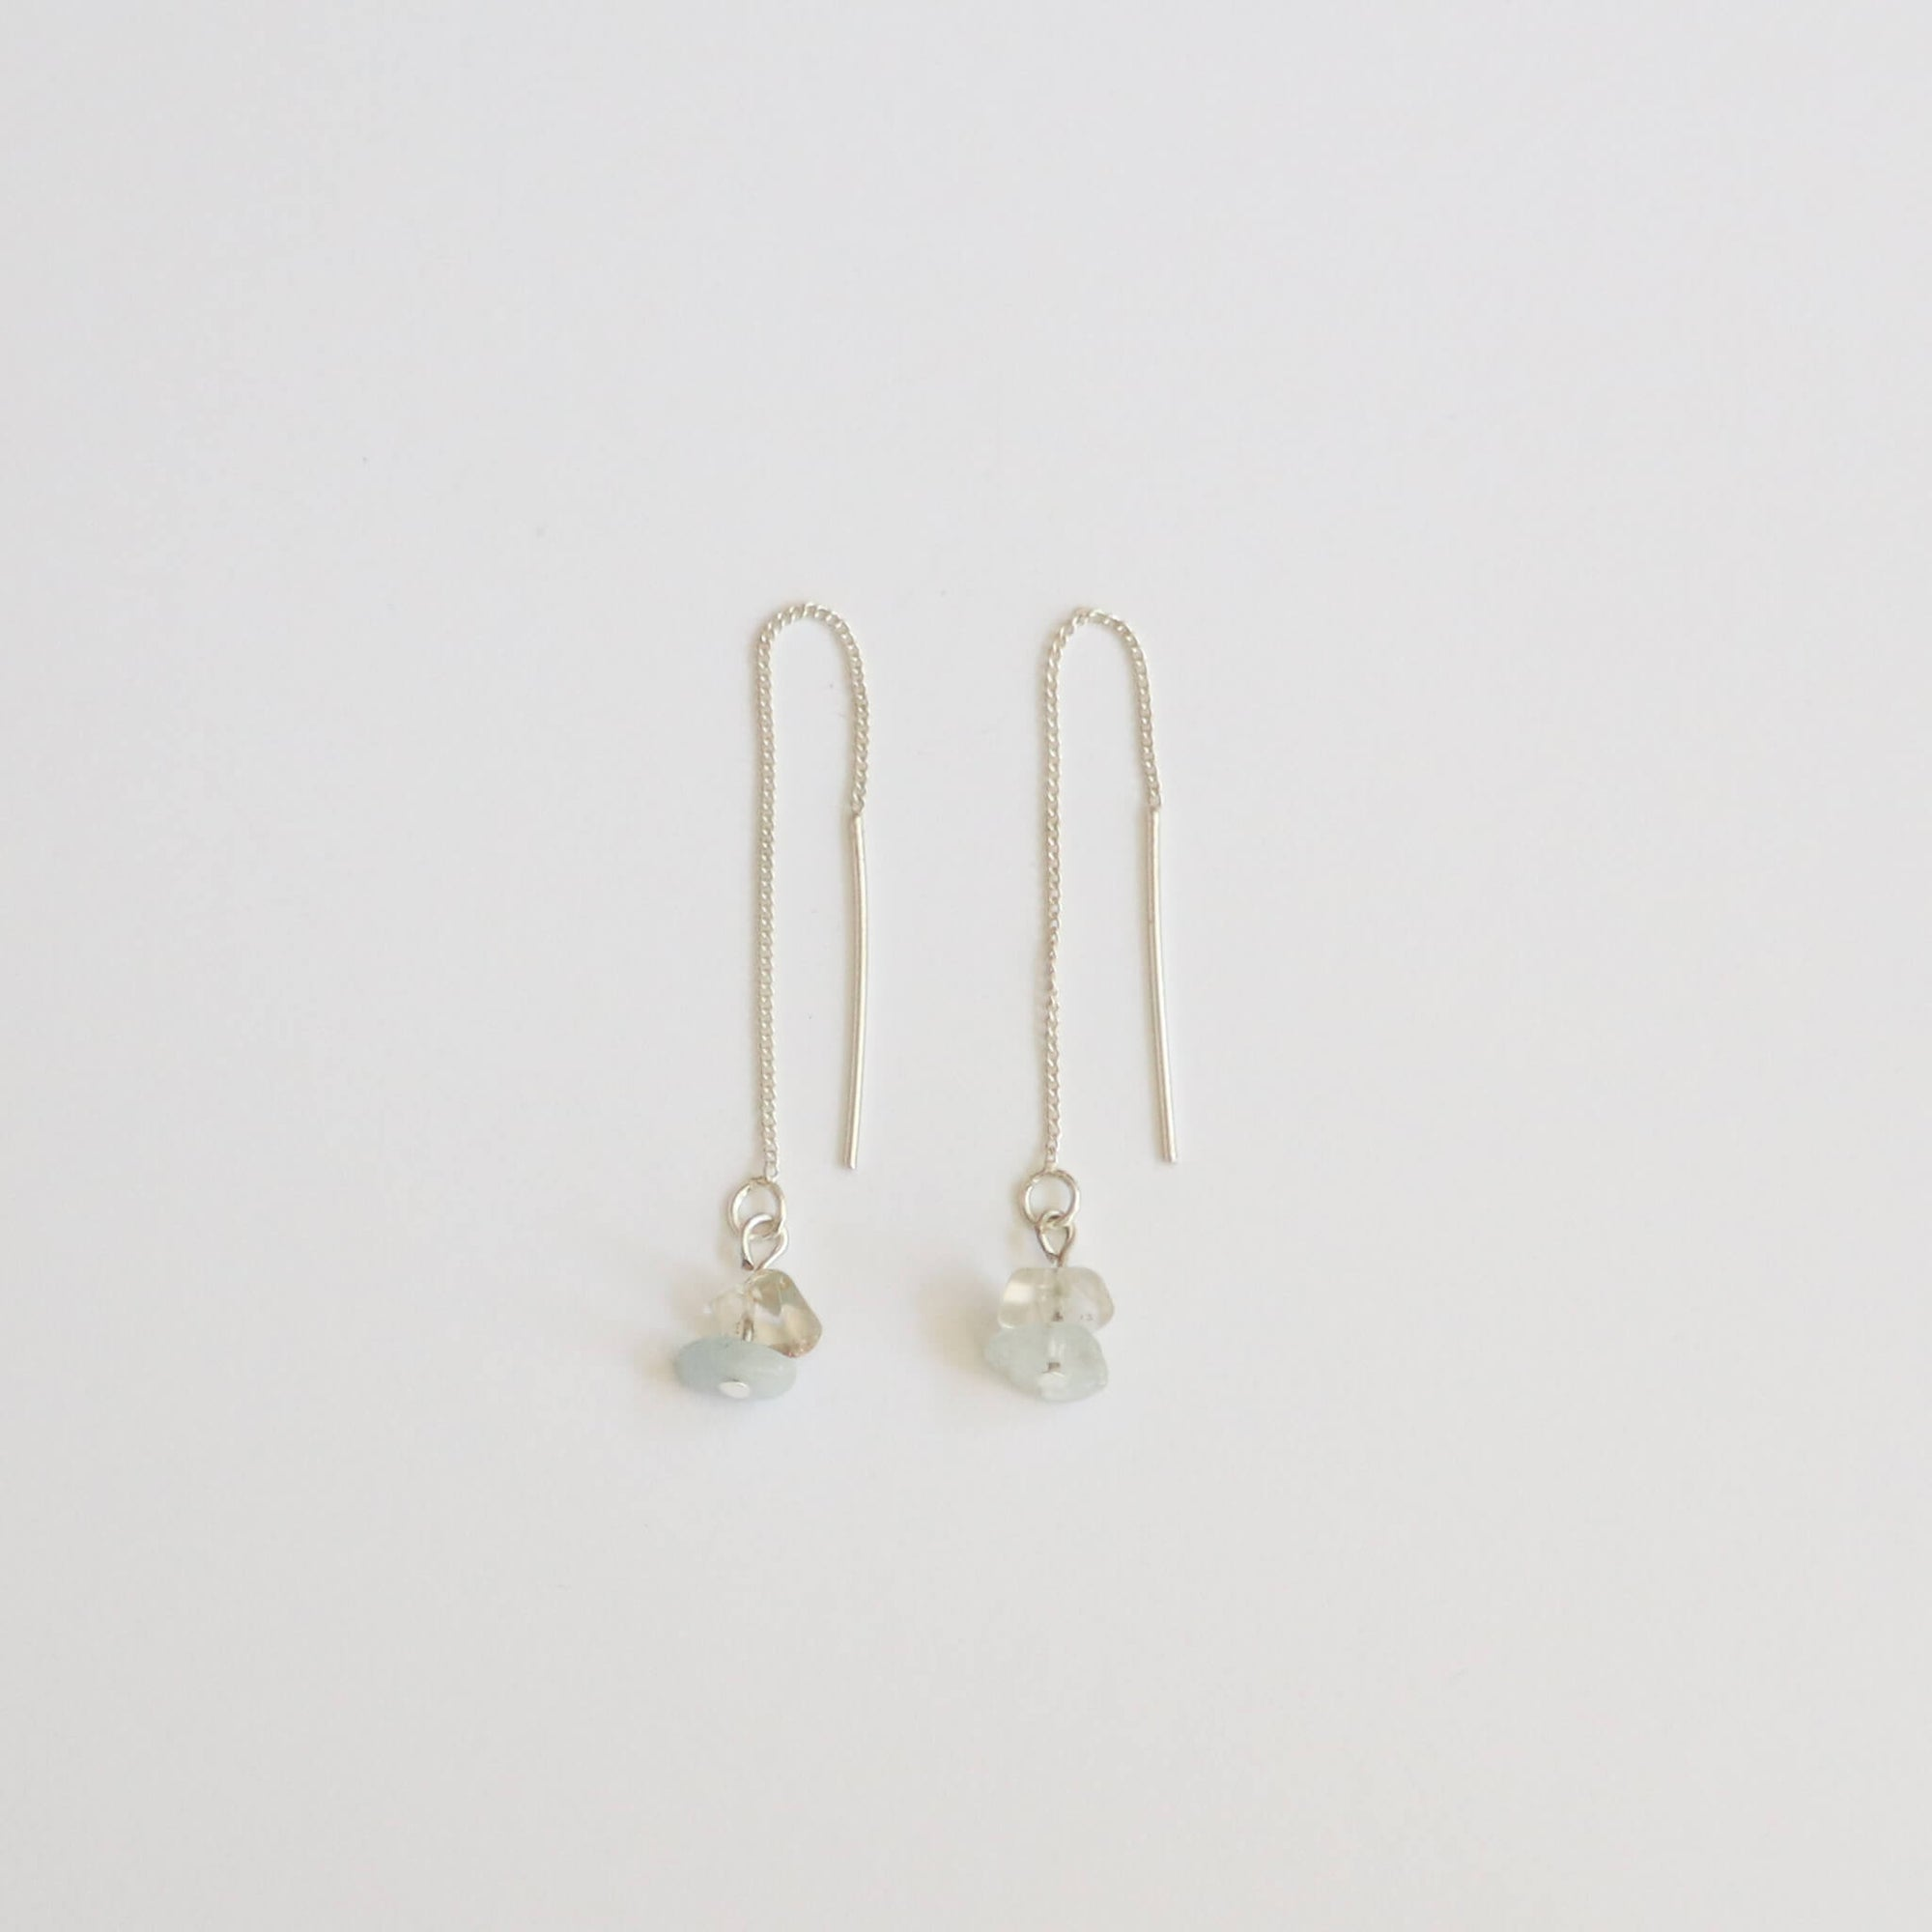 Clear Quartz & Jade Threader Earrings